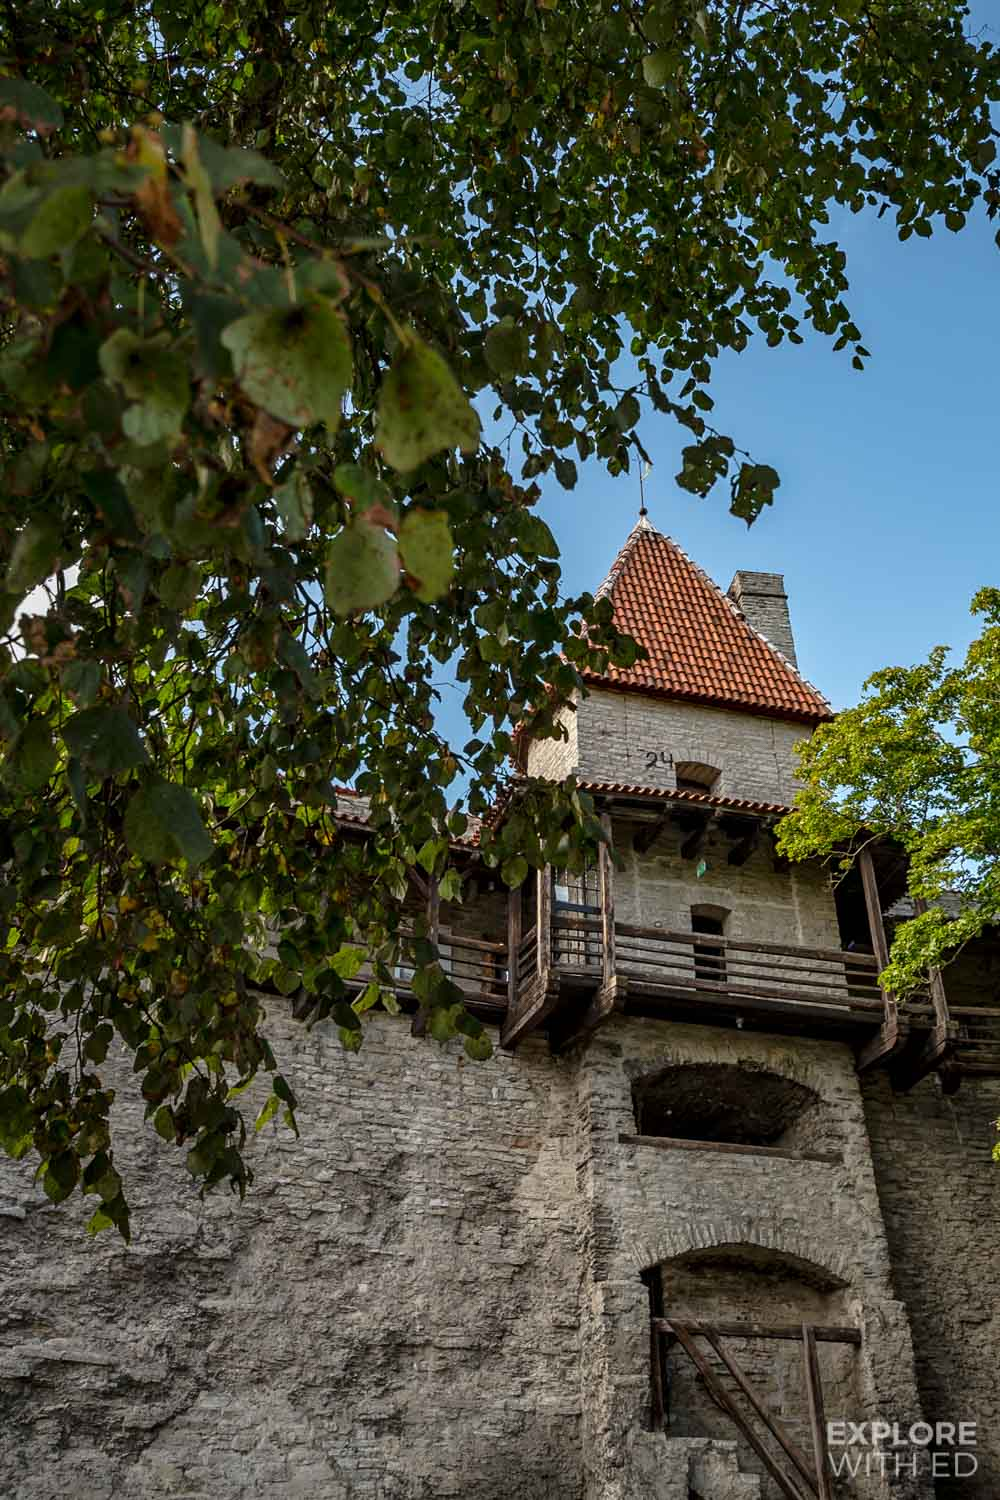 Stable Tower and Walkway in Tallinn